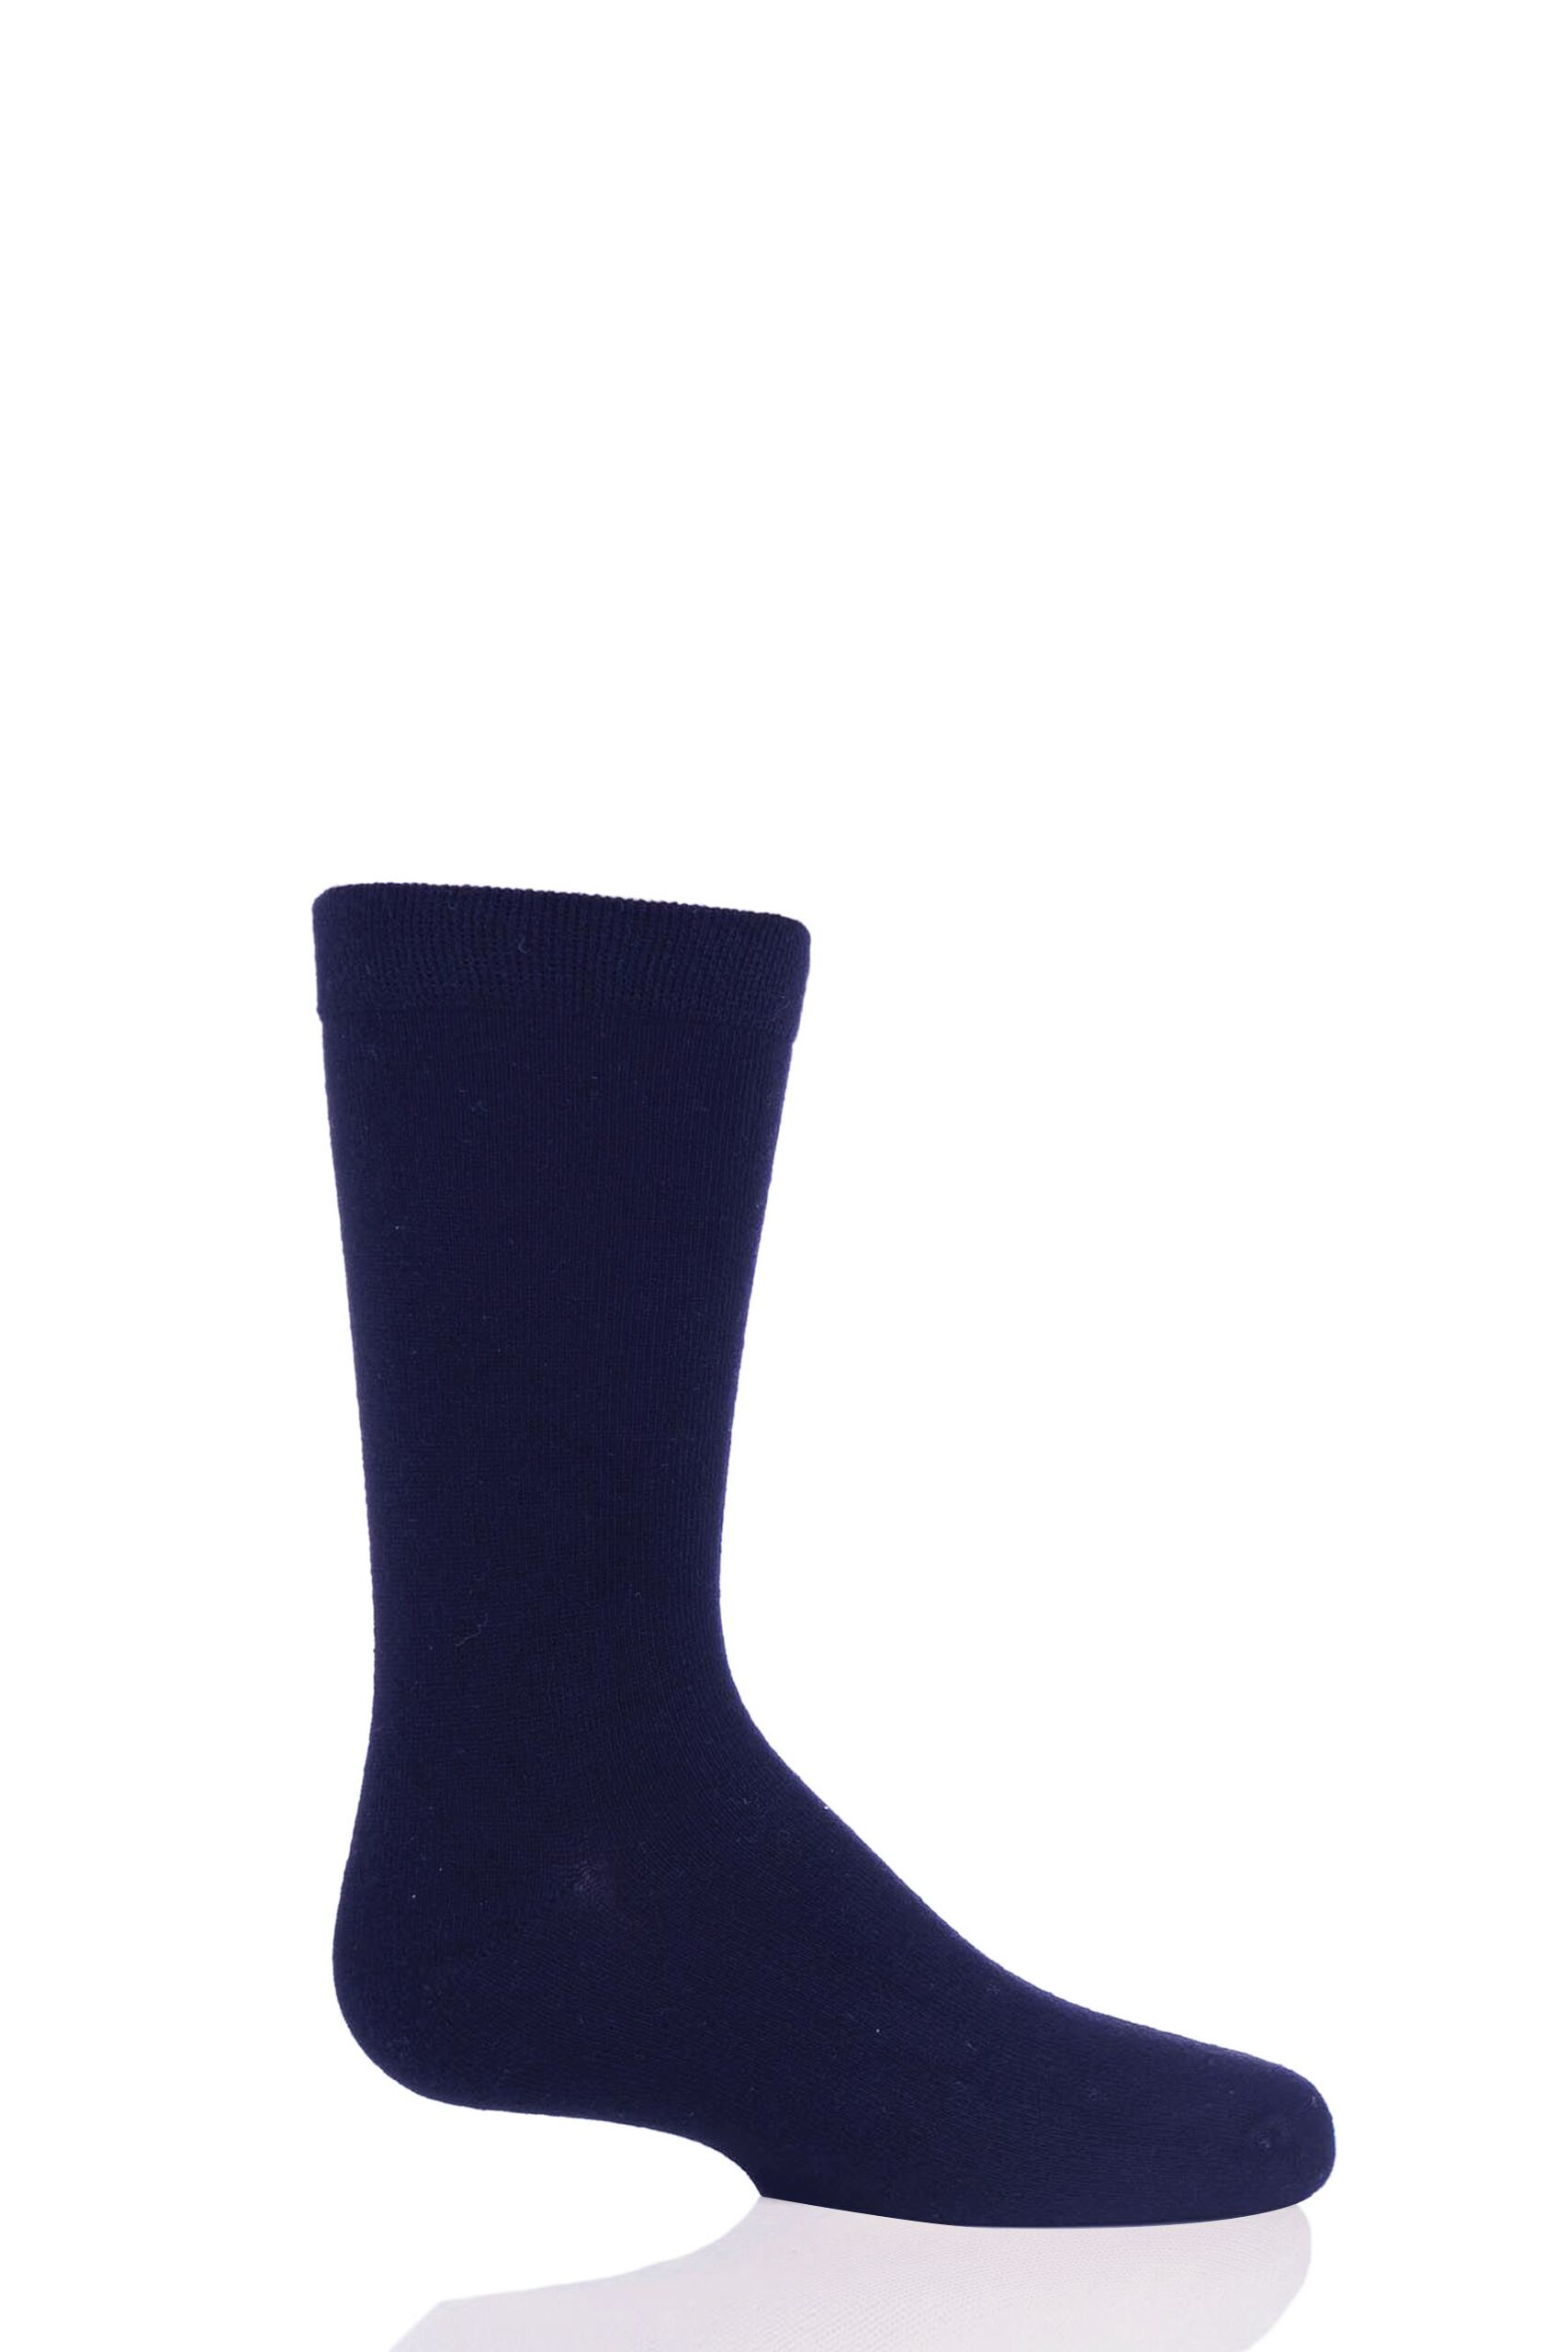 Image of 1 Pair Navy Plain Bamboo Socks with Comfort Cuff and Smooth Toe Seams Kids Unisex 12.5-3.5 Kids (8-12 Years) - SOCKSHOP